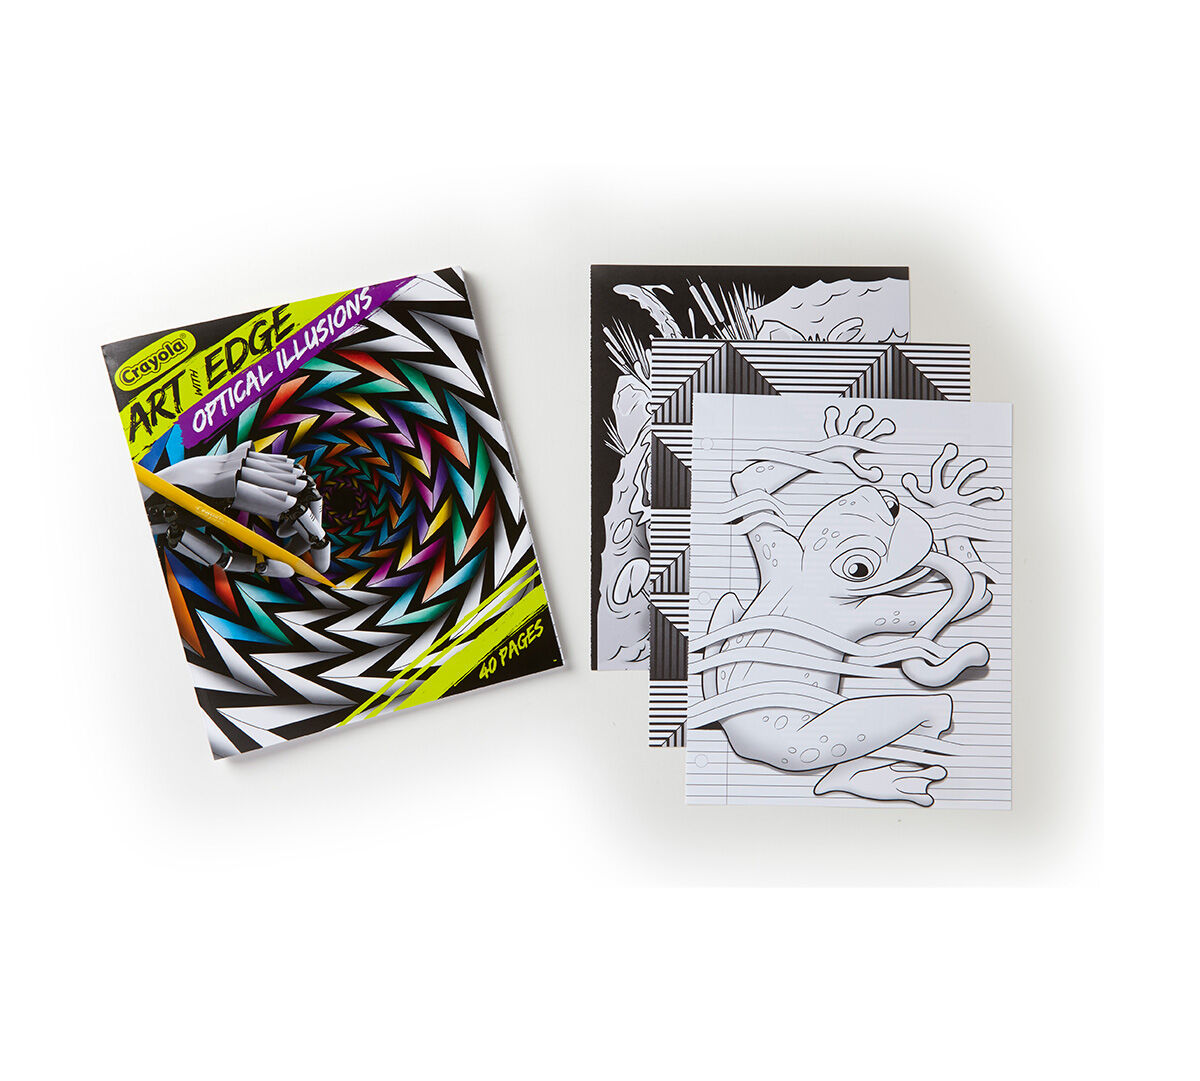 <p>The optical illusions in these Crayola Art with Edge Optical Illusions coloring pages create bold, intense images that pop off the page when brought to life with color. Use your imagination and artistic instincts to add color to these designs and enjoy the unexpected, eye-tricking results.</p>